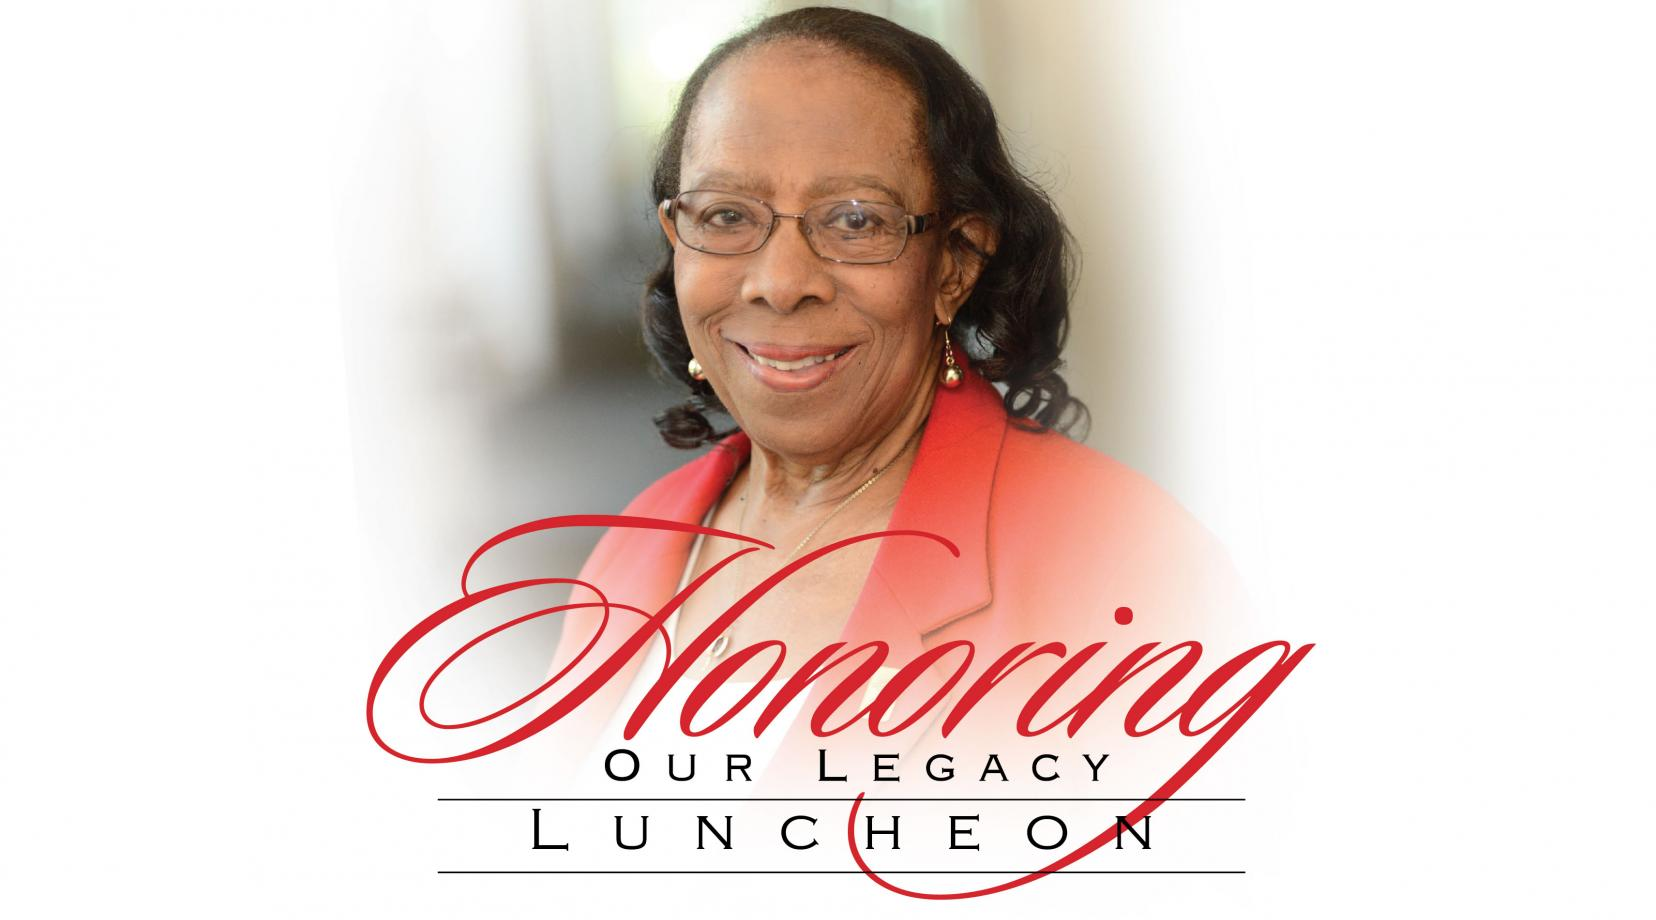 Honoring Our Legacy Luncheon Celebrating Dr. Reba Ross Hollingsworth